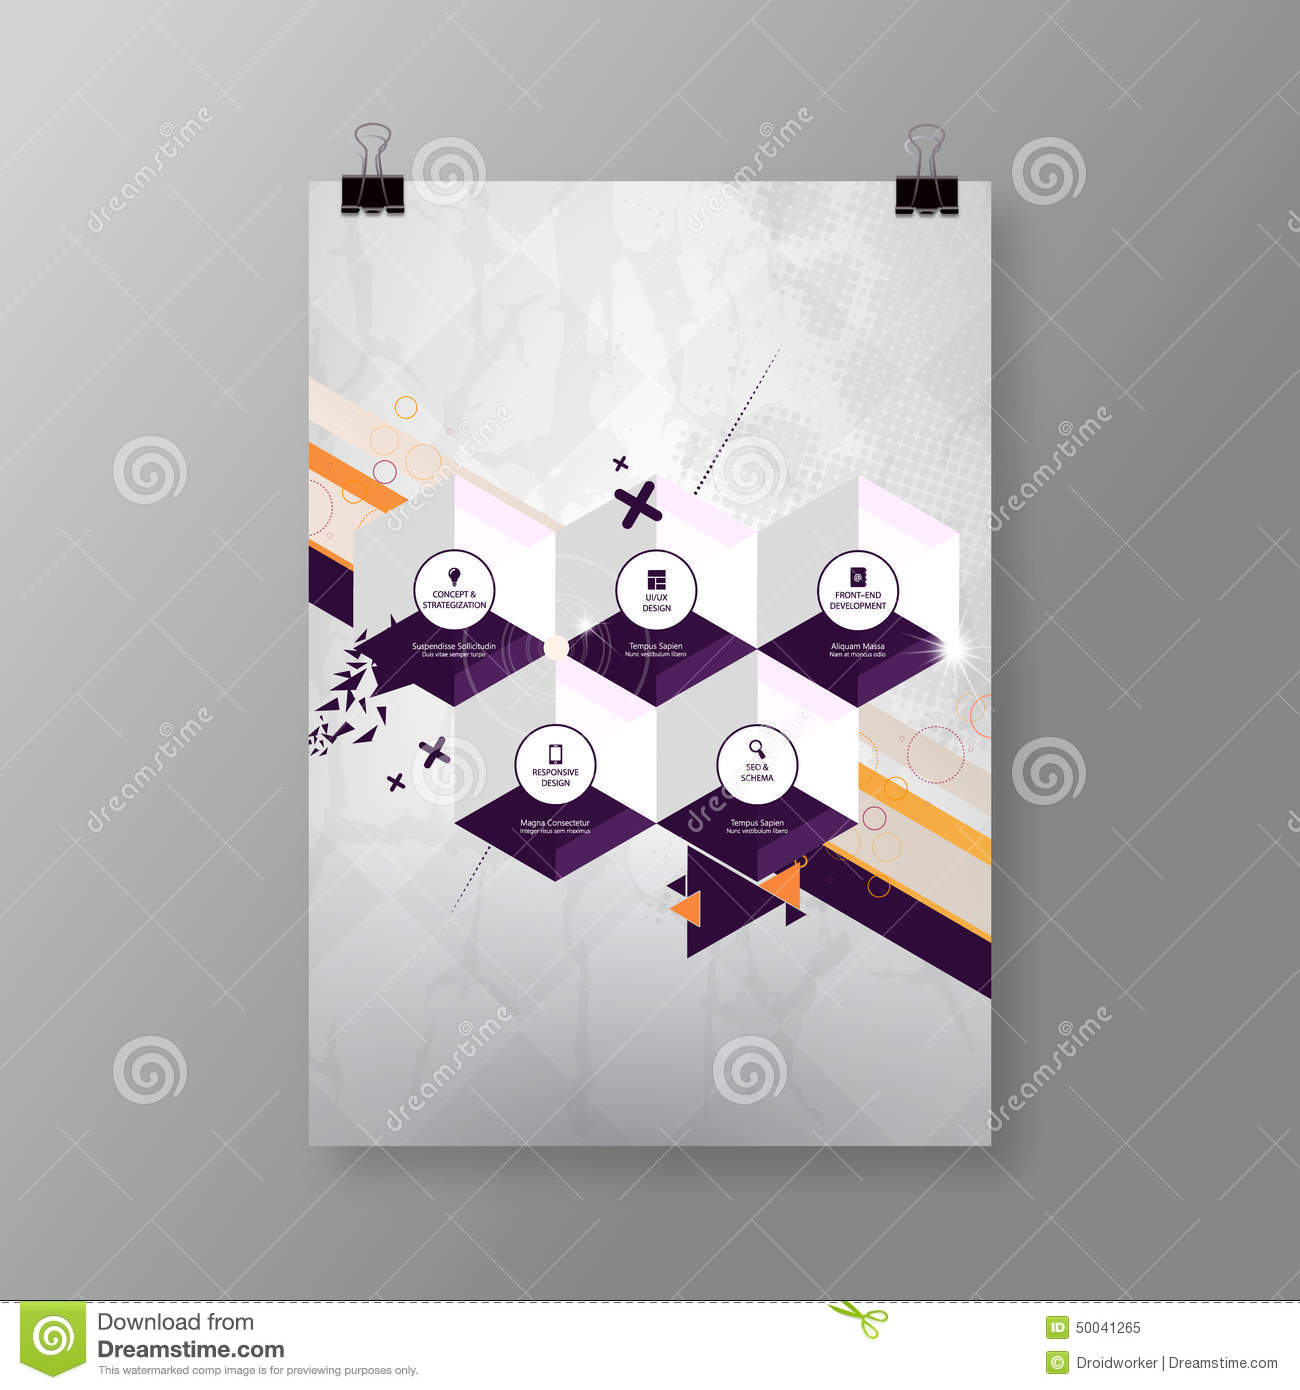 Poster design eps - A4 A3 Format Poster Minimal Hexagons Abstract Background With Your Text Eps 10 Stock